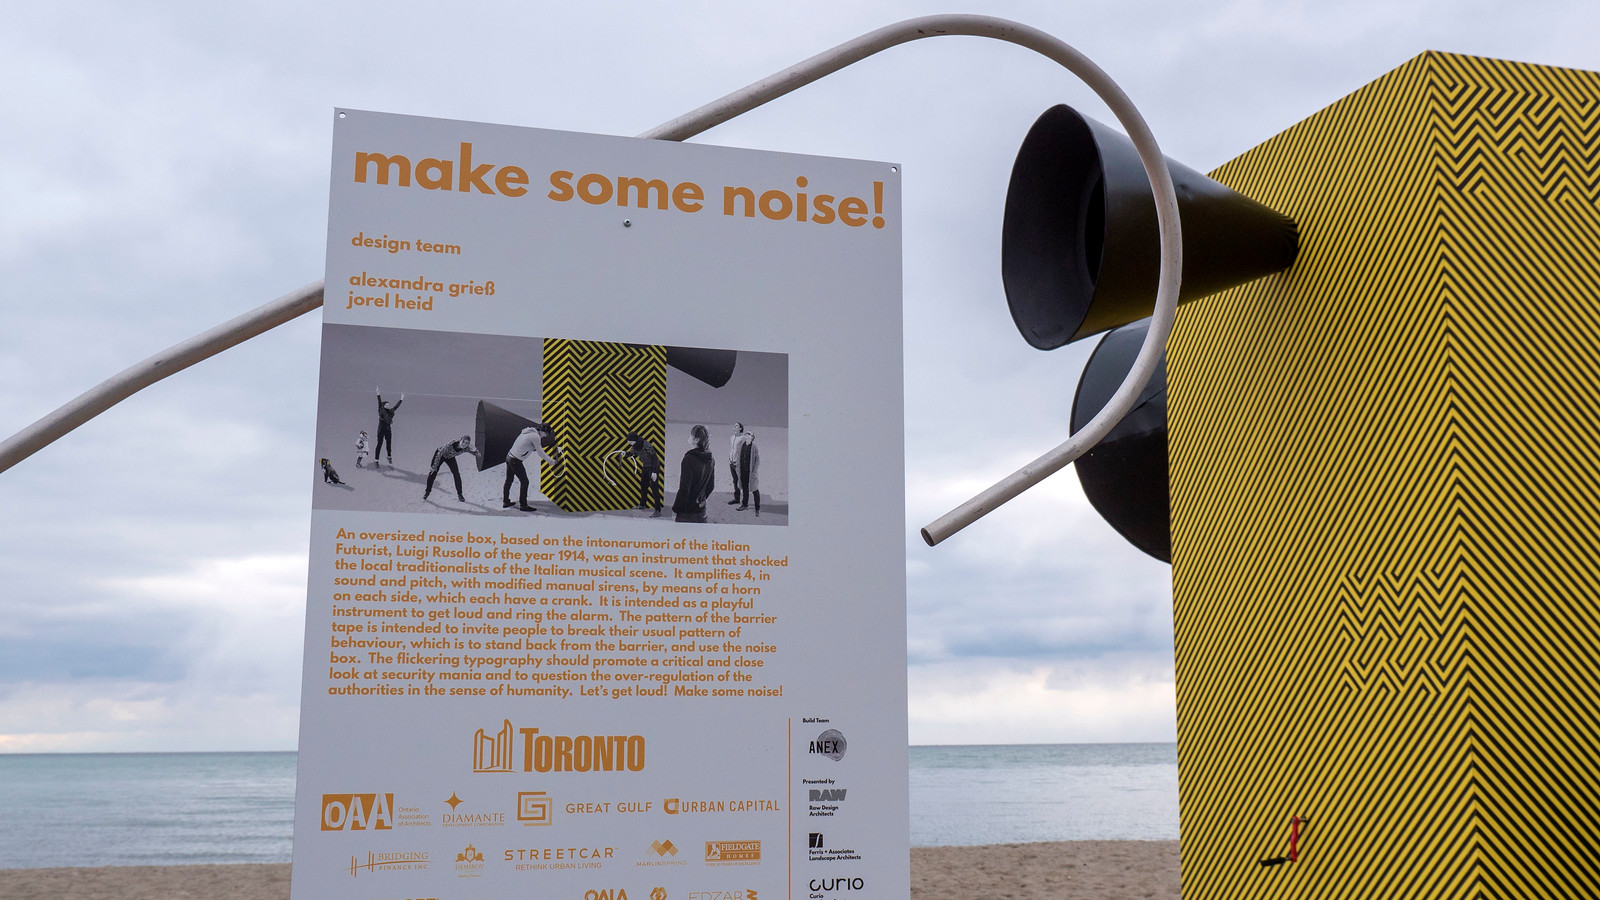 Winter Stations Toronto: Outdoor Art Installations